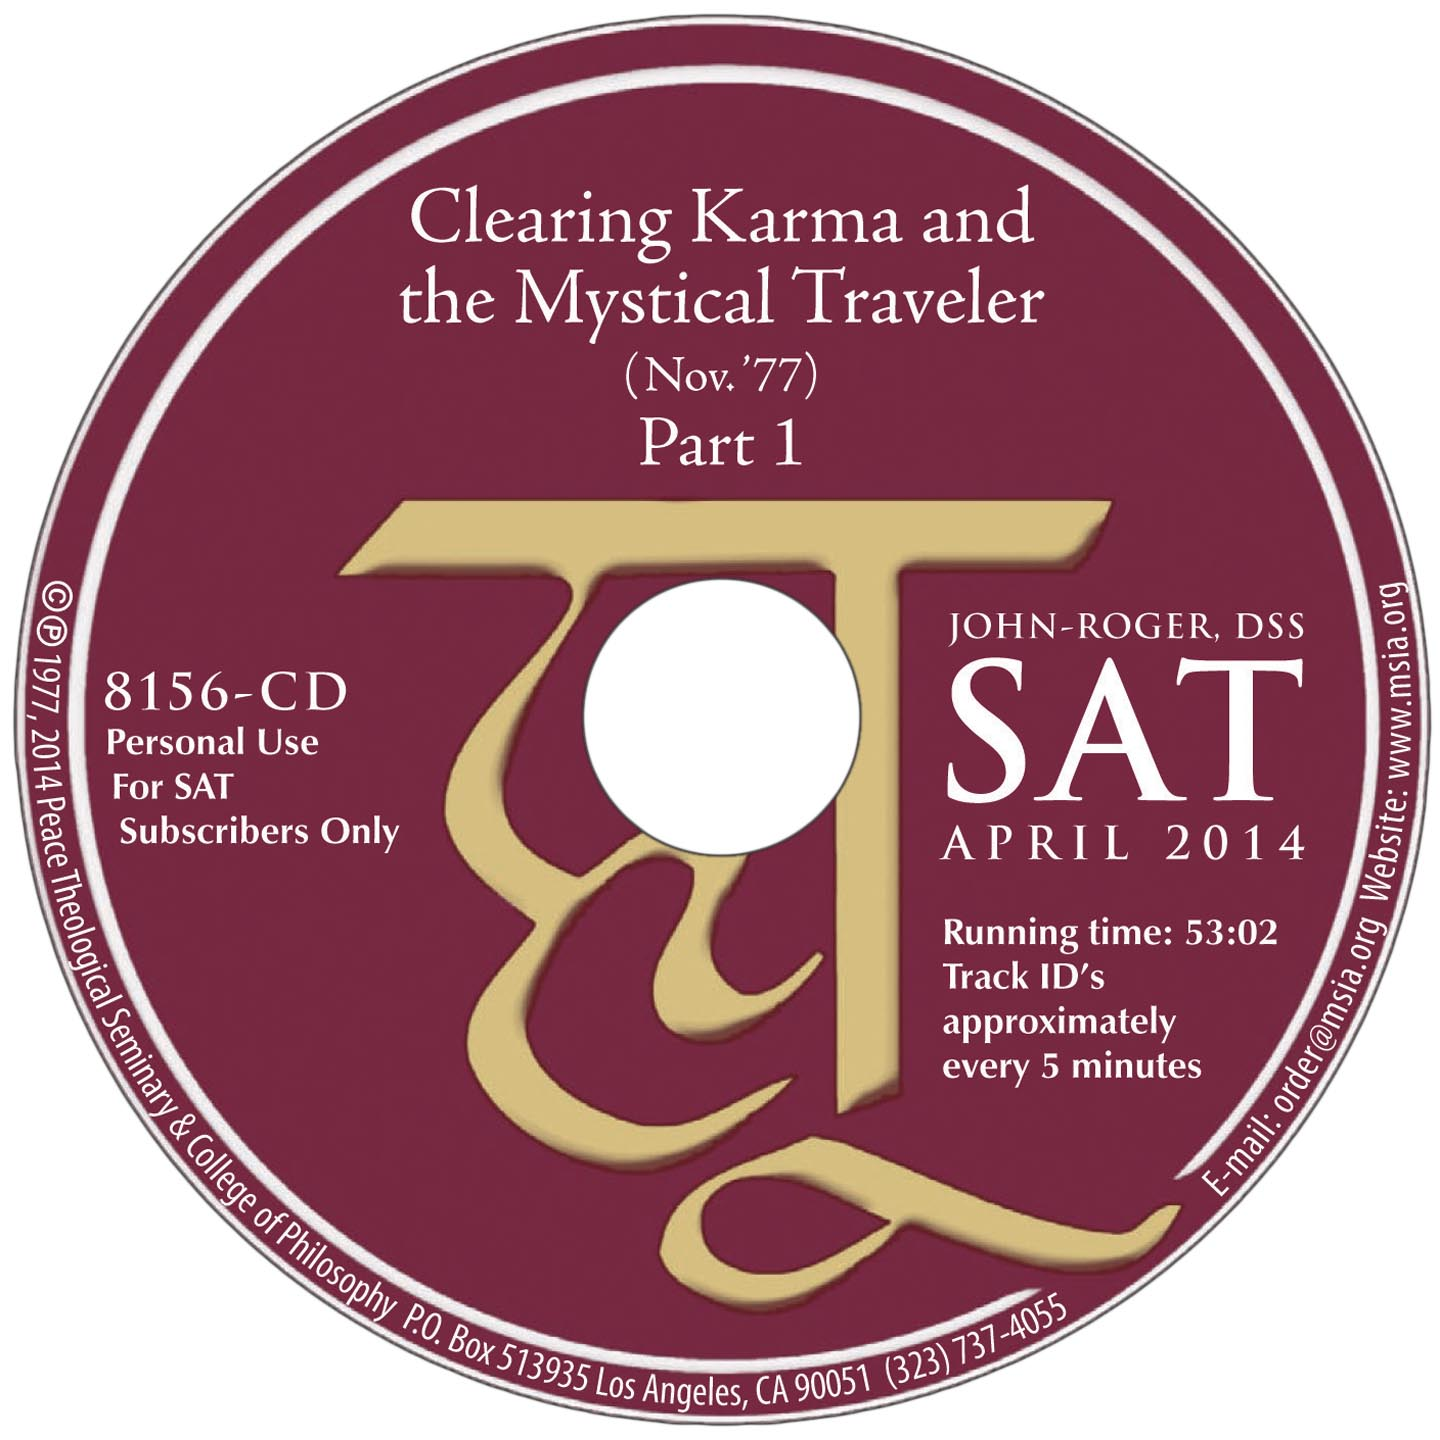 Clearing Karma and the Mystical Traveler - Part 1 CD